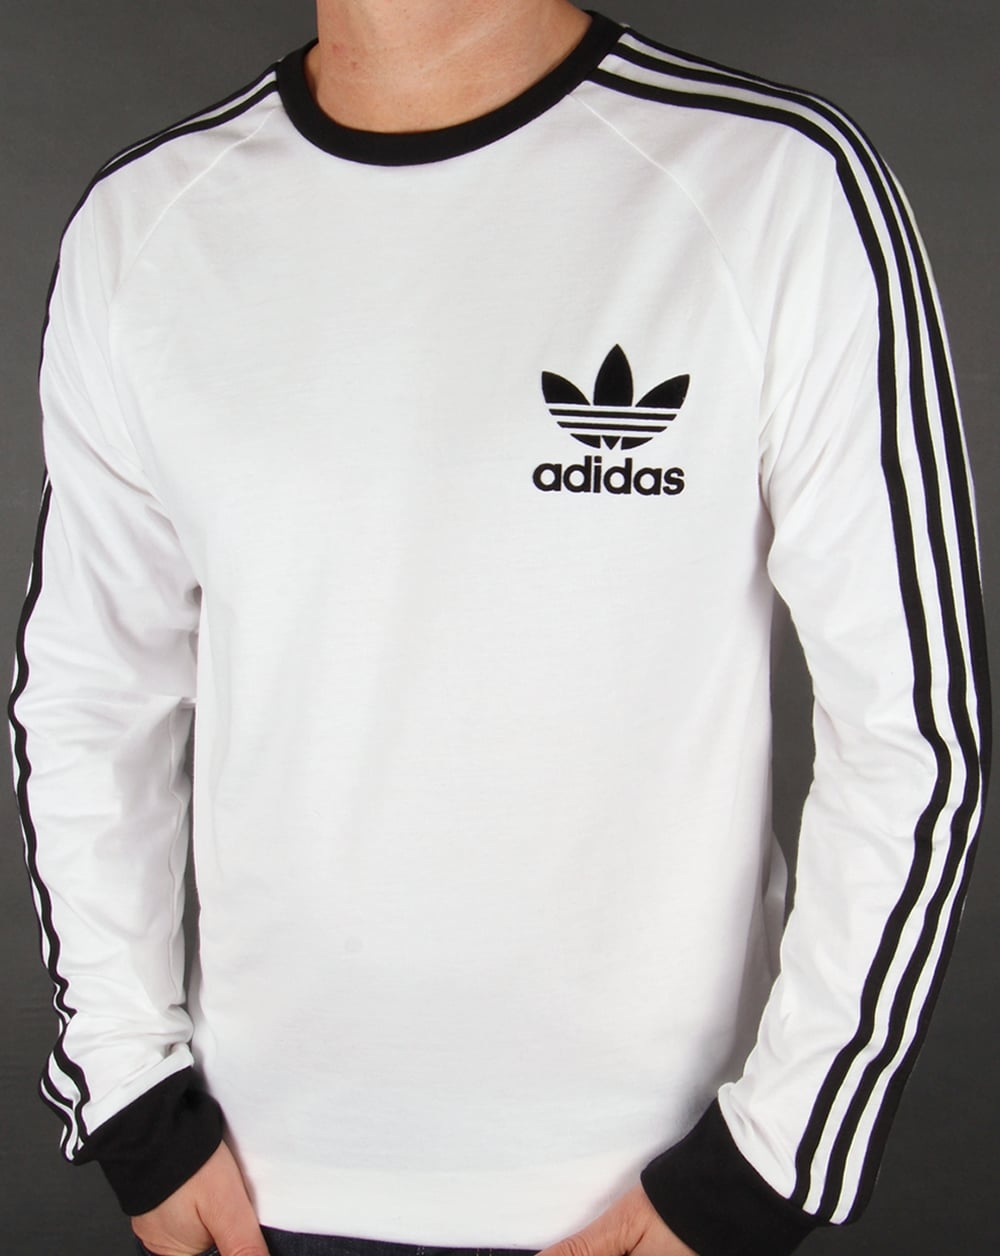 Adidas originals clfn long sleeve t shirt white trefoil for Adidas long sleeve t shirt with trefoil logo